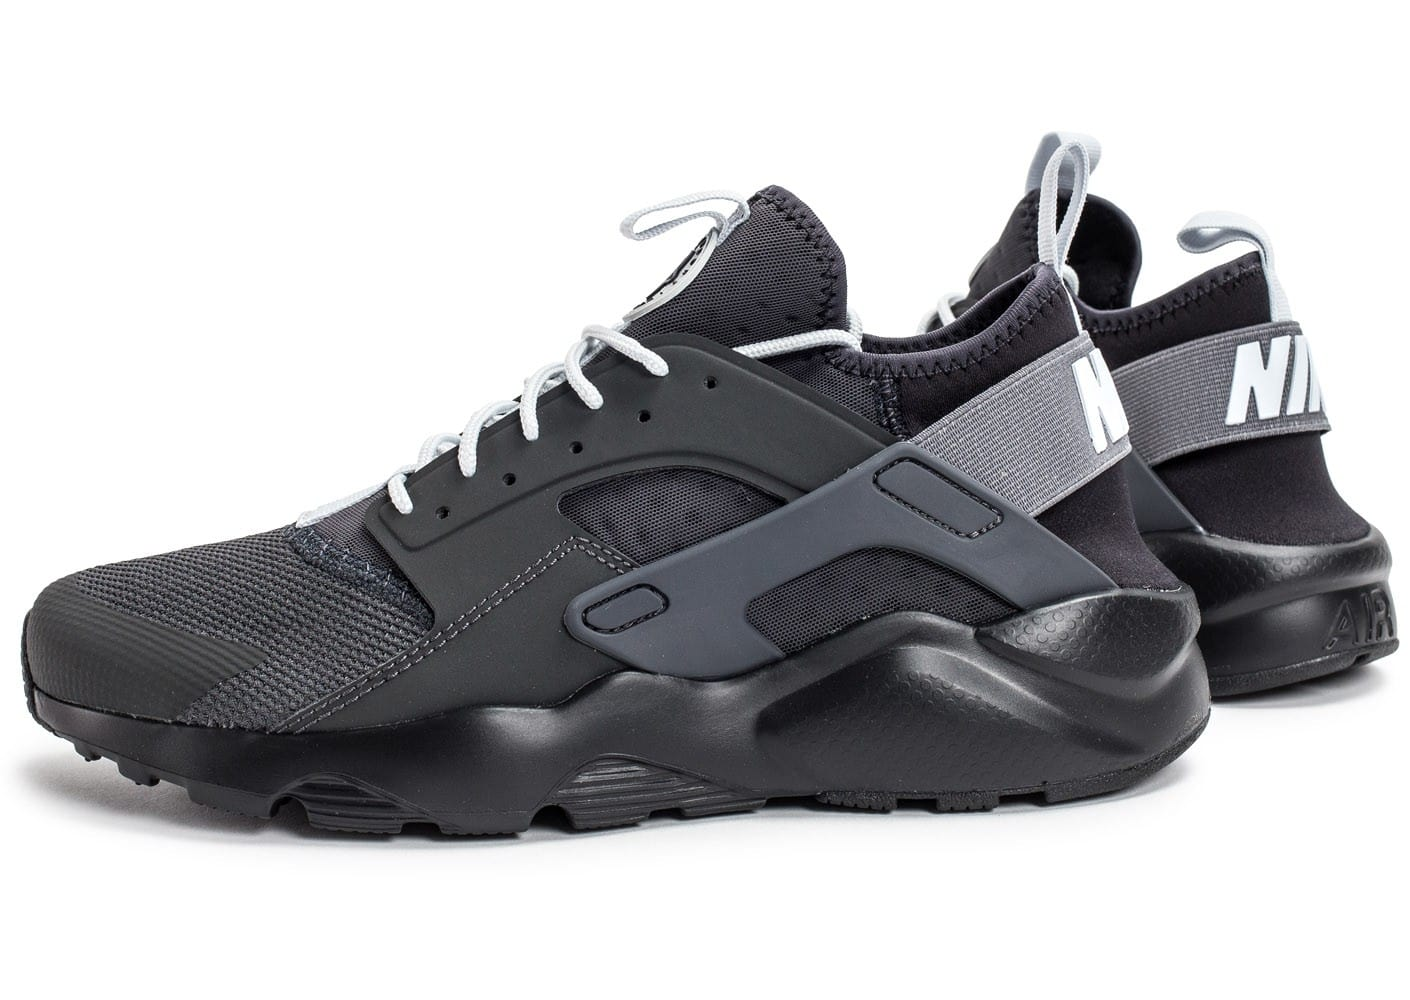 NIKE Baskets Huarache Run Ultra Chaussures Homme kpd7YCkm